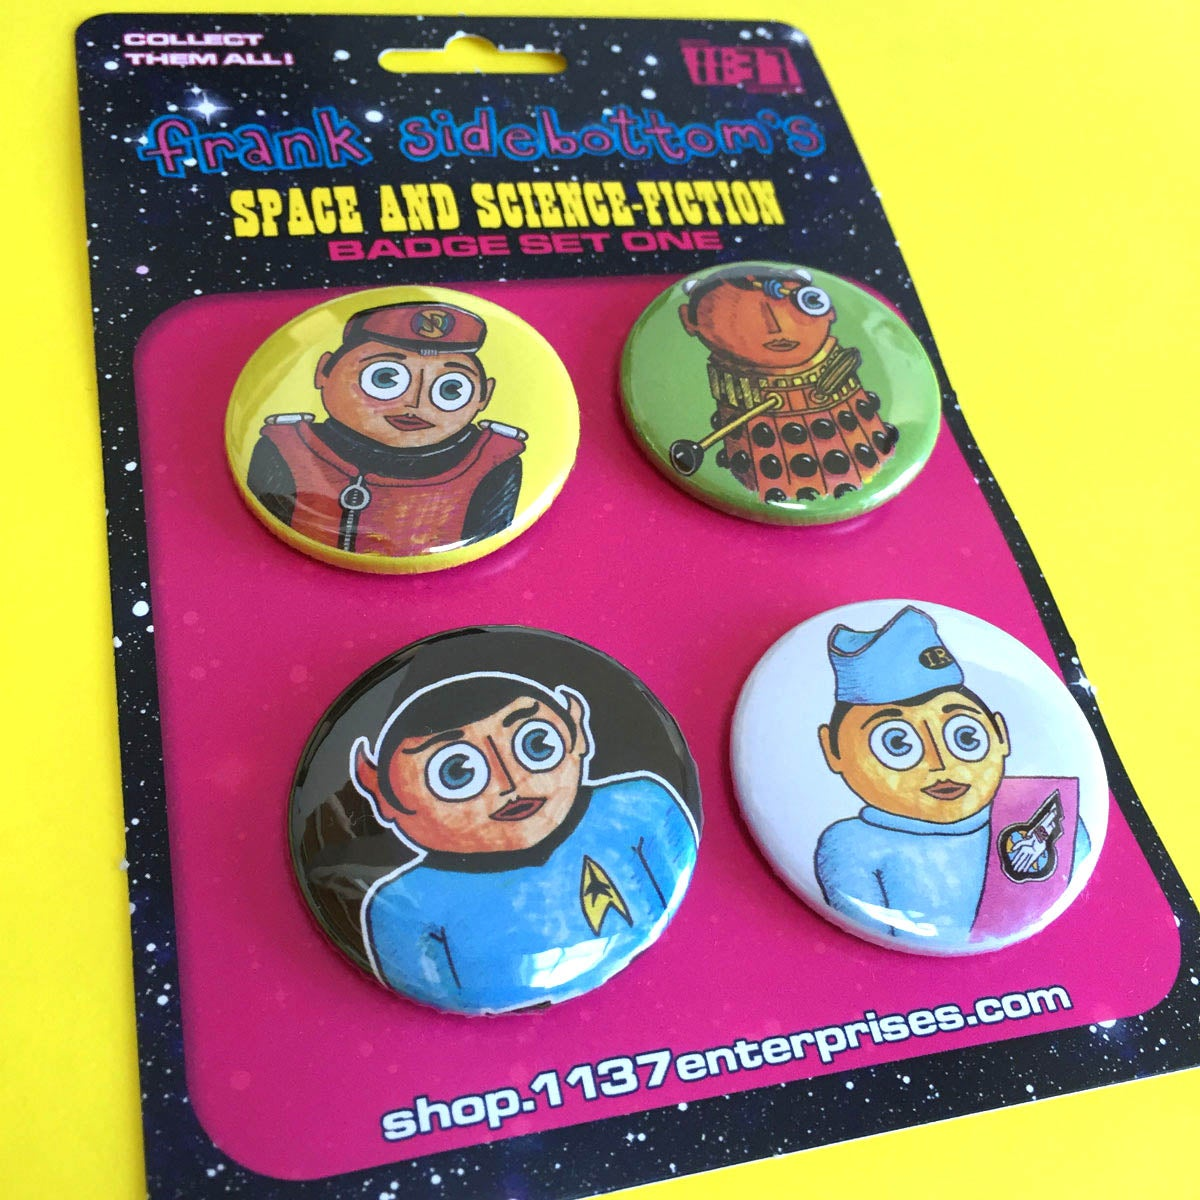 Image of Space and Science Fiction Badge Set 1